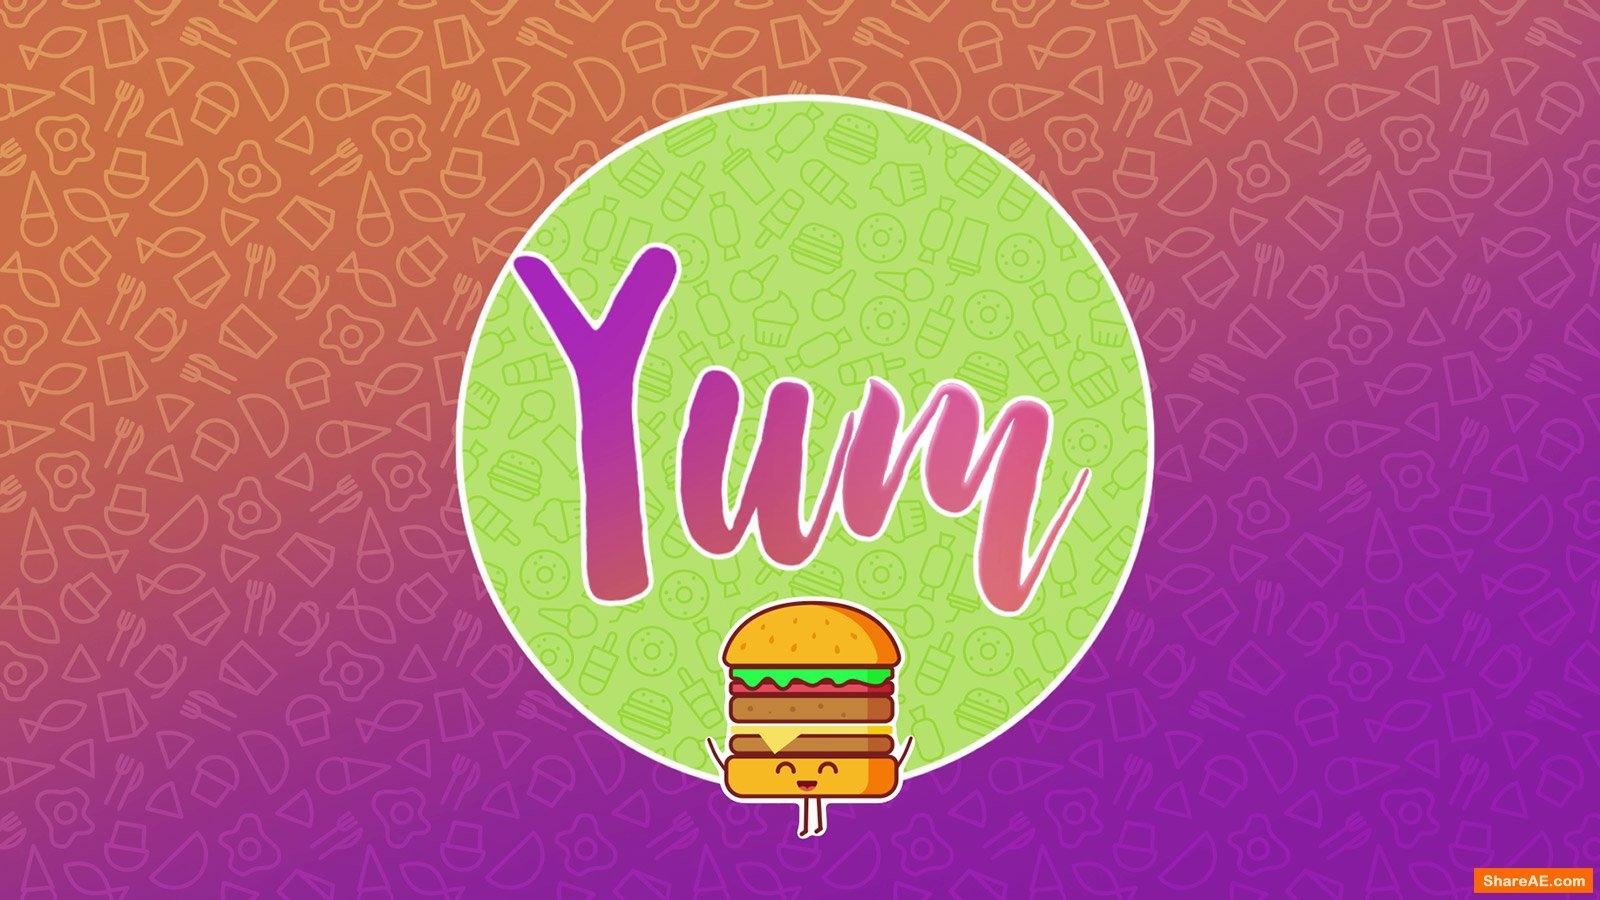 Yum - 100+ Assets for Food Videos - Motion Graphic (RocketStock)